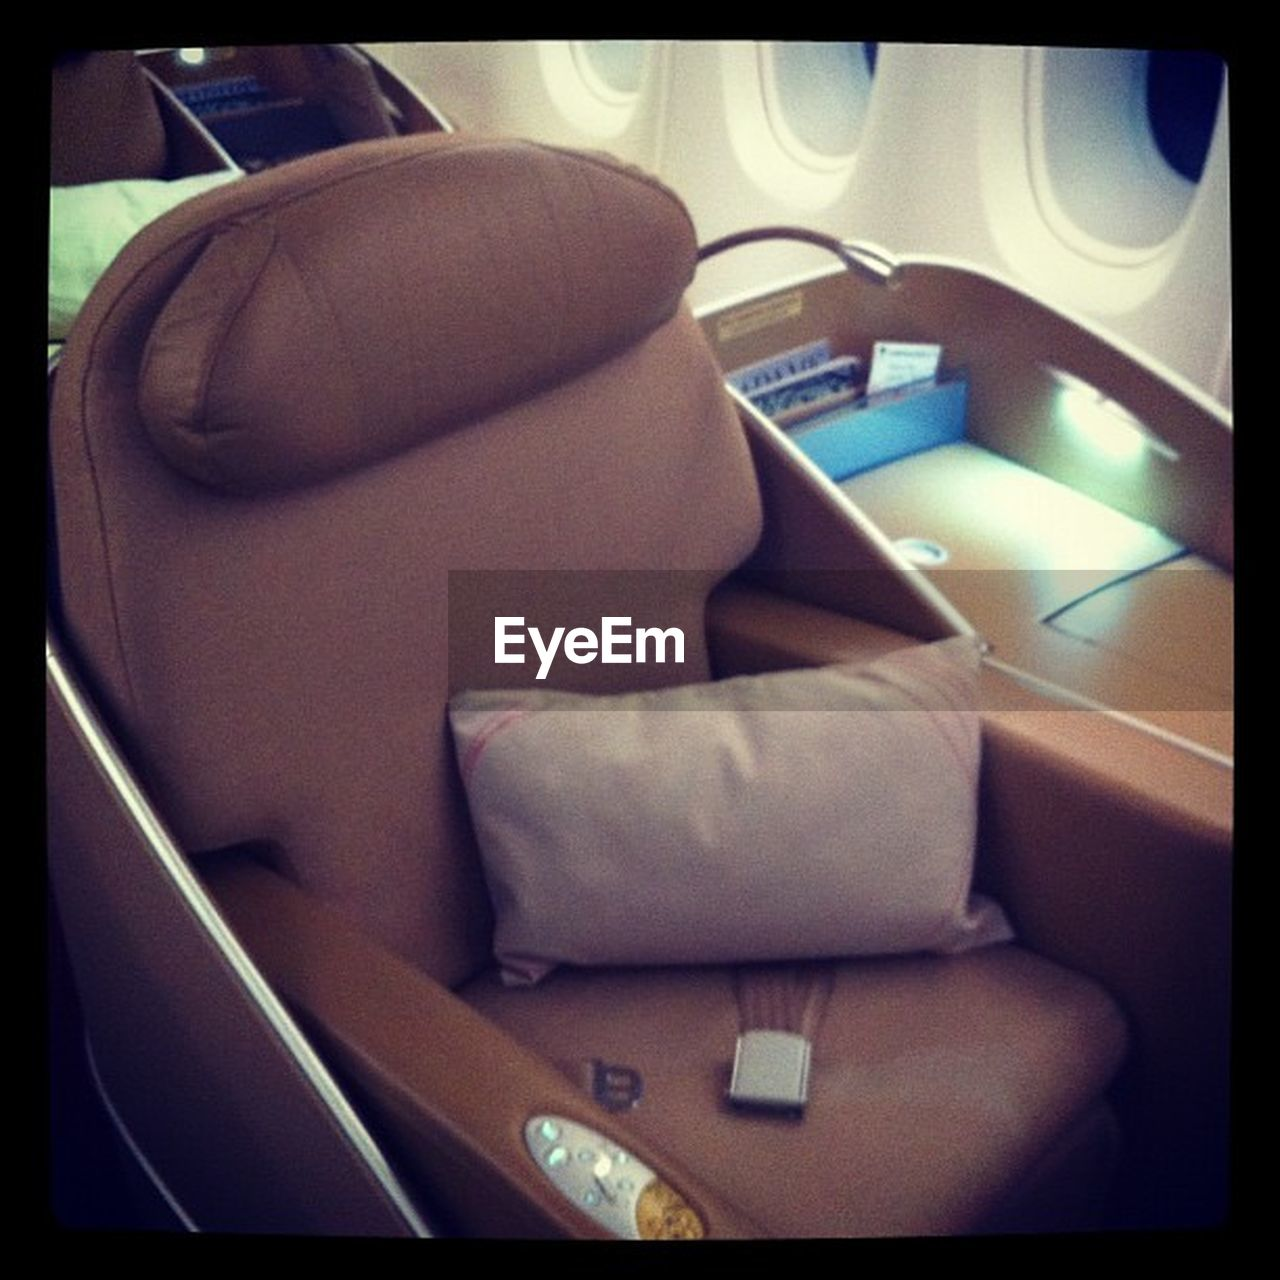 indoors, vehicle seat, chair, no people, technology, seat, close-up, airplane, day